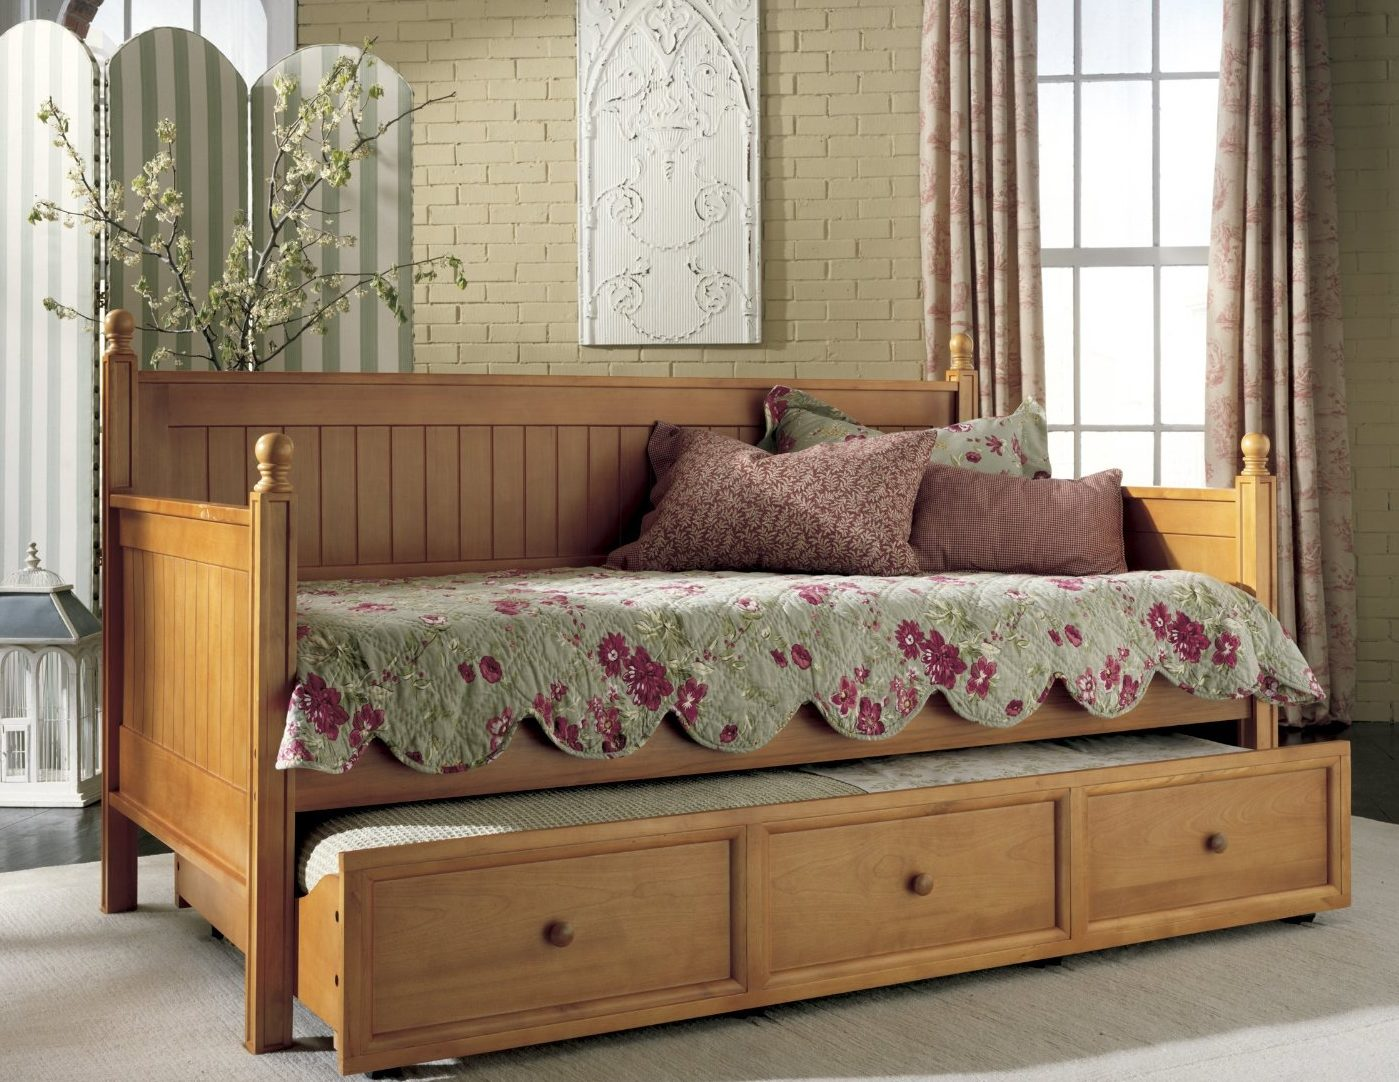 Cheap Daybeds | Twin Daybed with Trundle | Cheap Daybeds for Sale